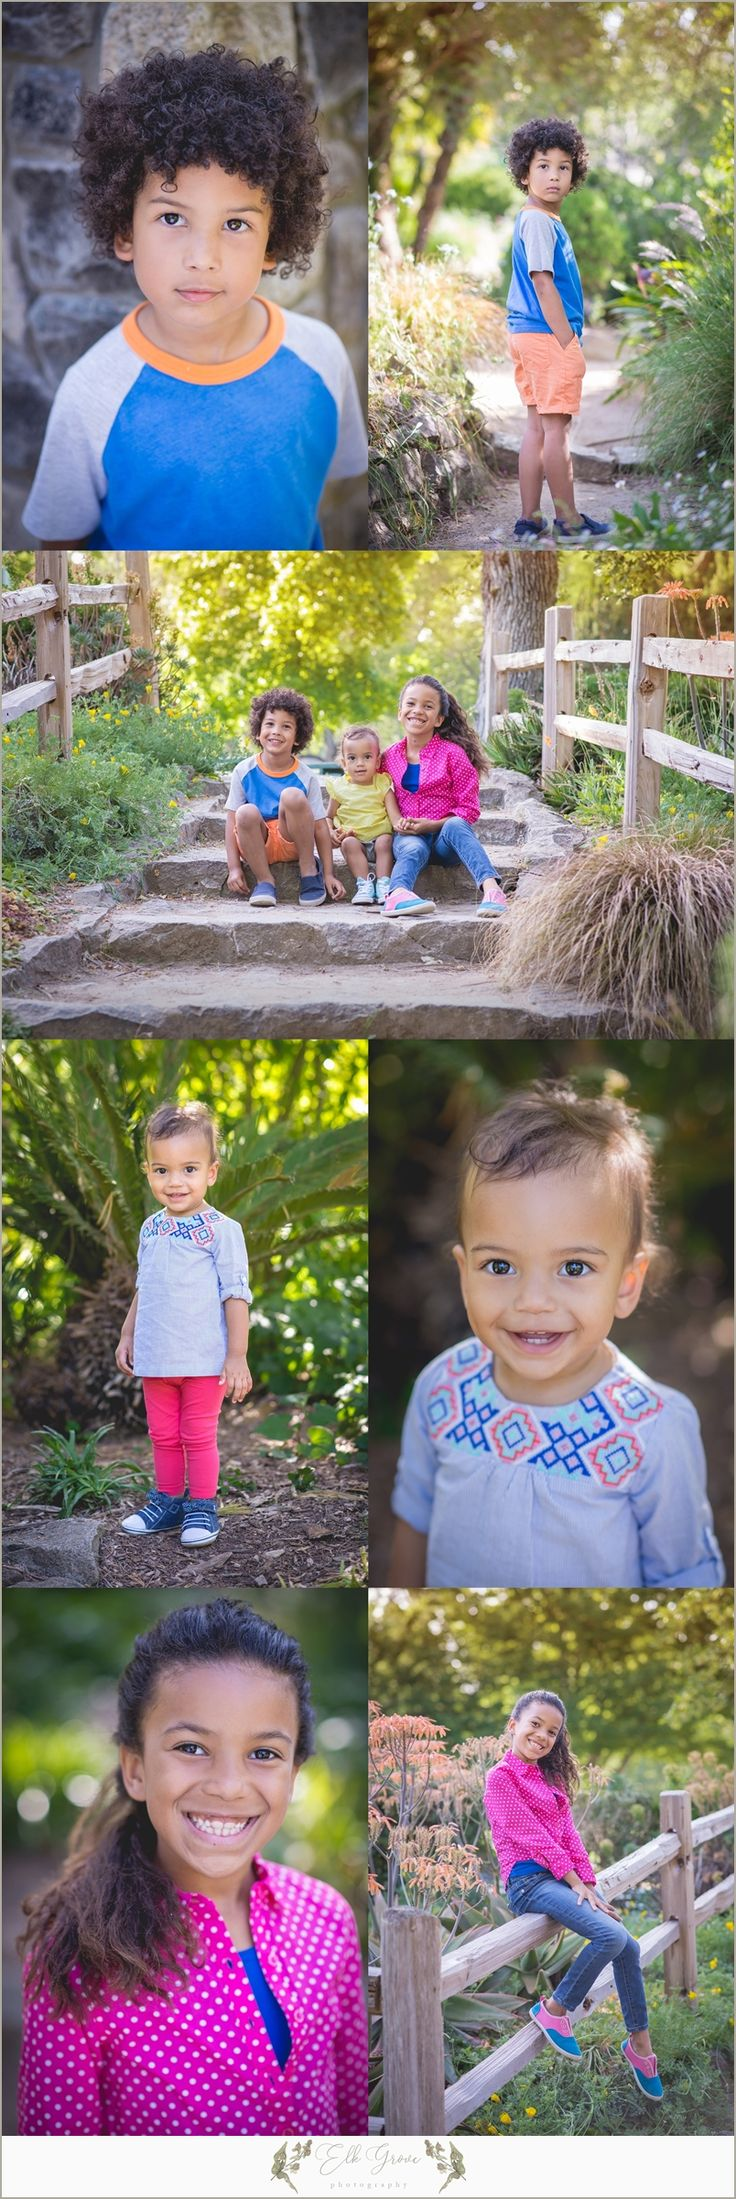 Siblings. Family Photography by Elk Grove Photography - Natural Light - Posing Ideas for Families, Siblings, Parents, Couples, and Large Groups. Unposed Candid Ideas. Family Photography Outfit Ideas and Color Palettes. Sacramento, CA.